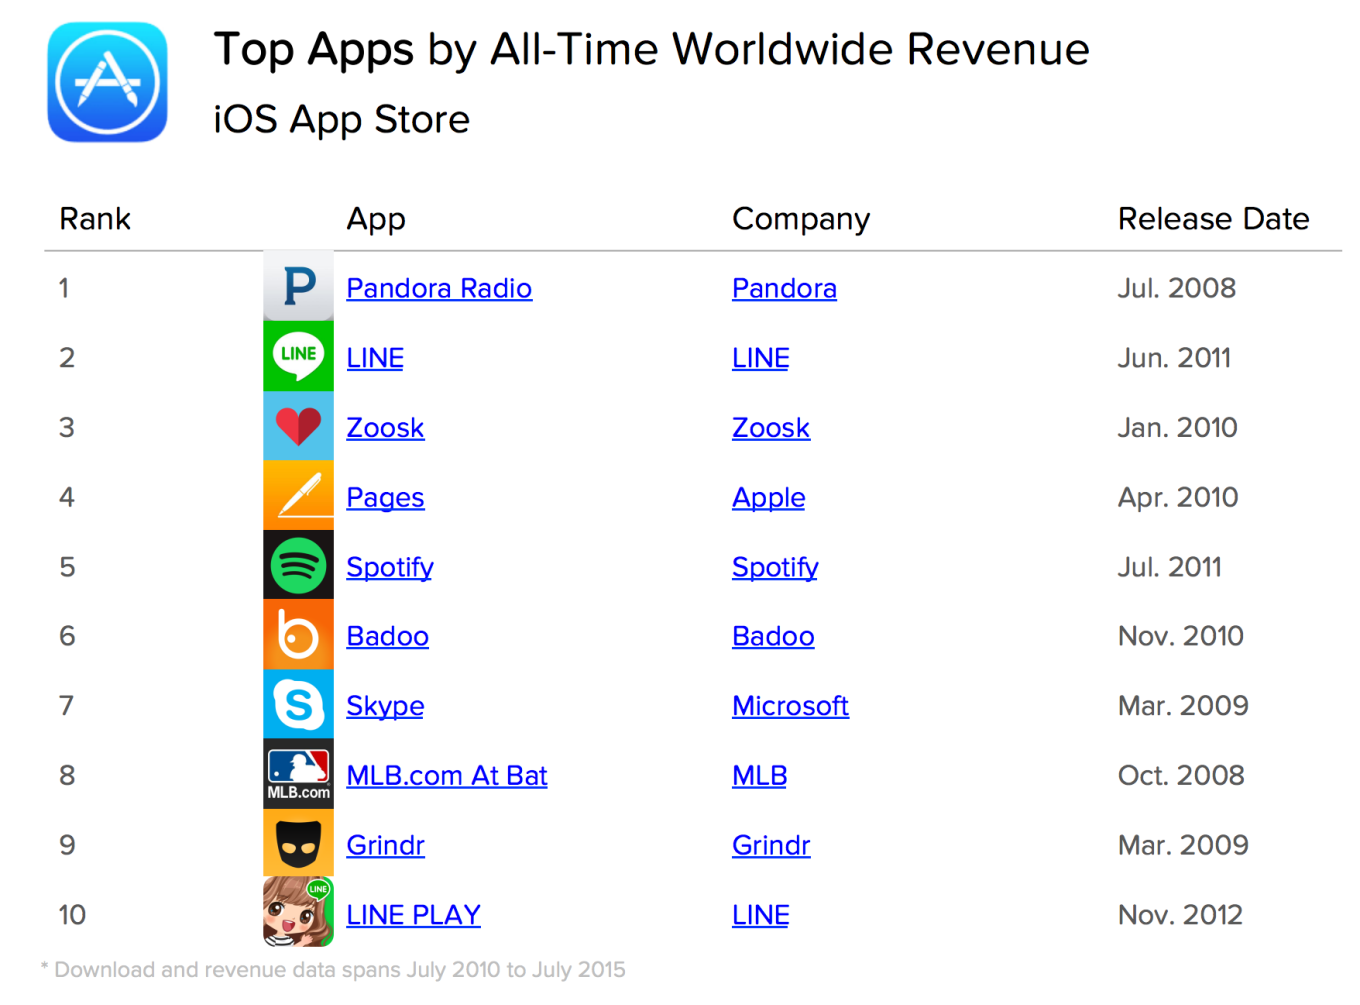 Top All-Time Worldwide Revenue